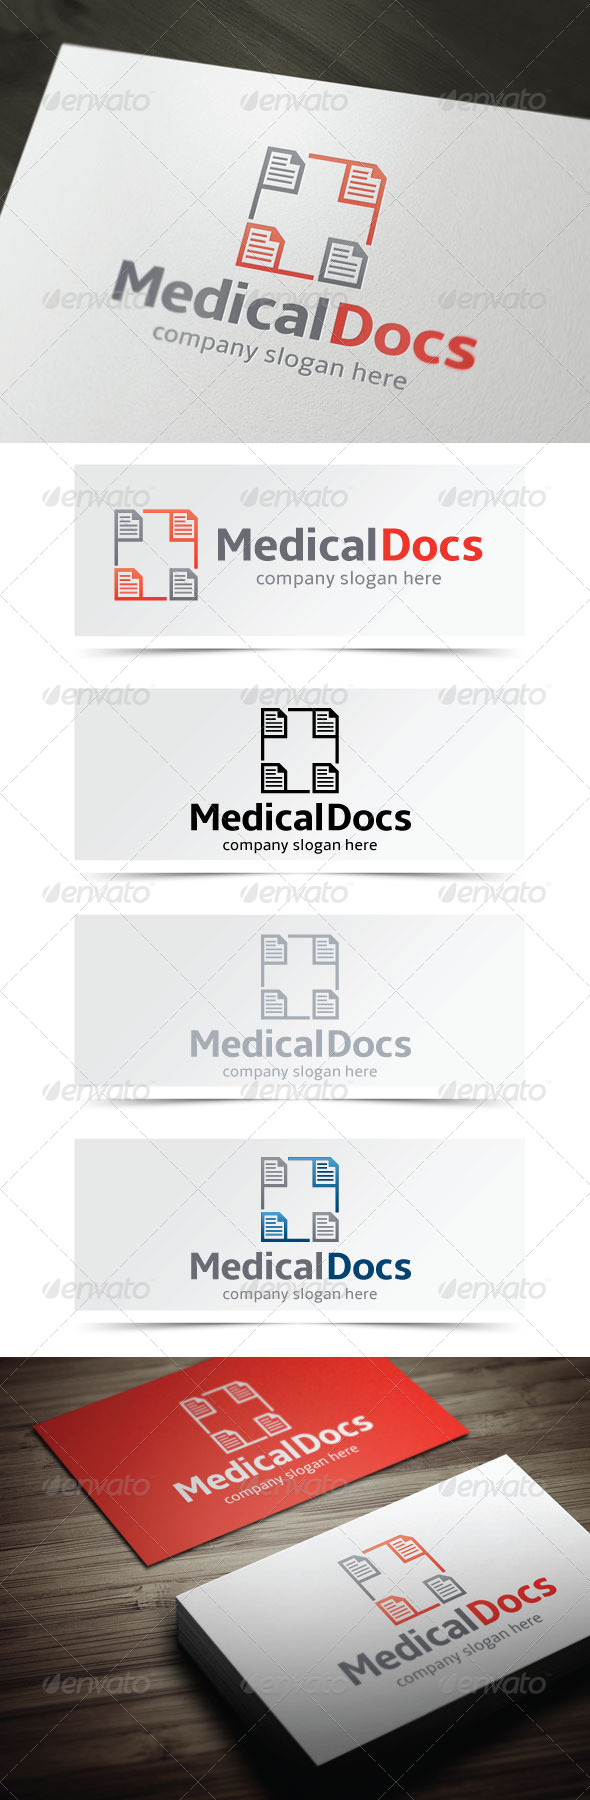 GraphicRiver Medical Docs 5020708